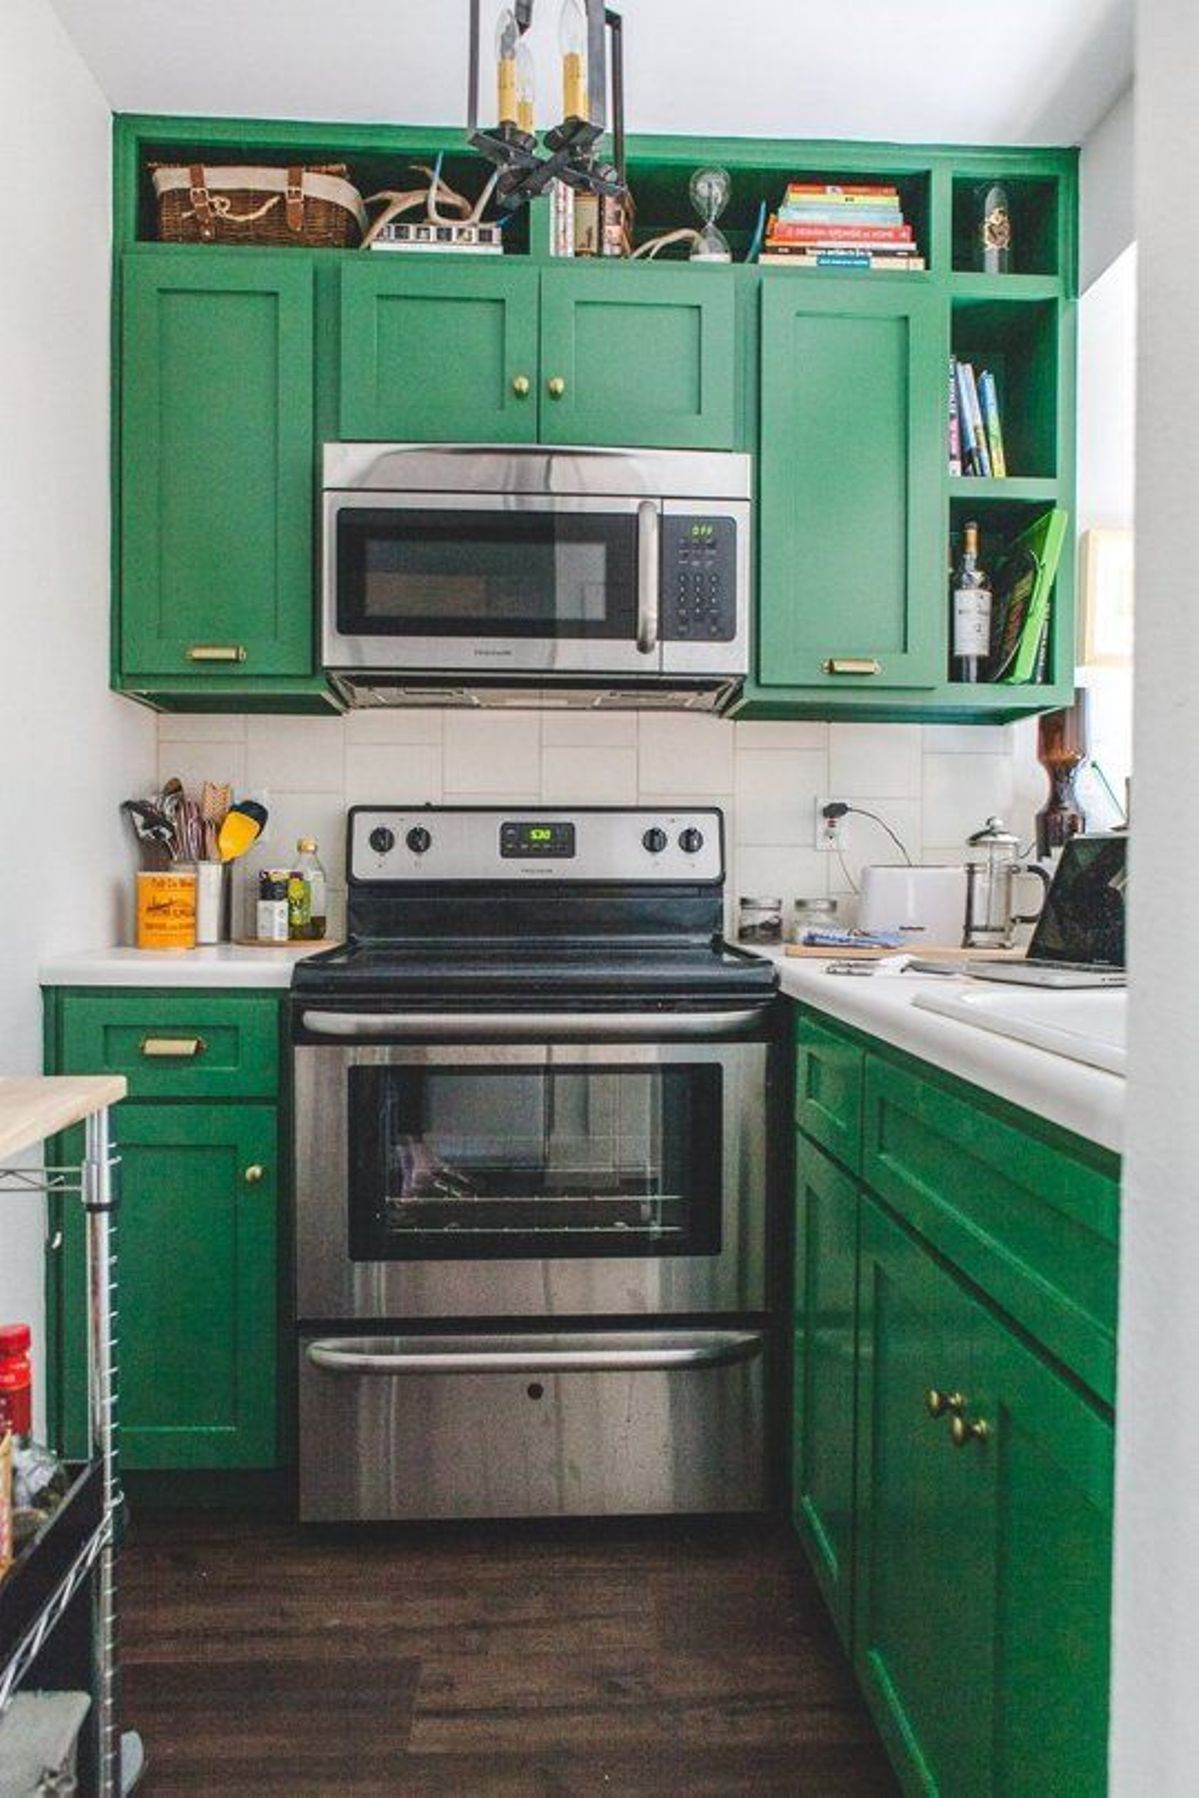 Very Small Kitchen With Green Painted Cabinets And Stainless Steel